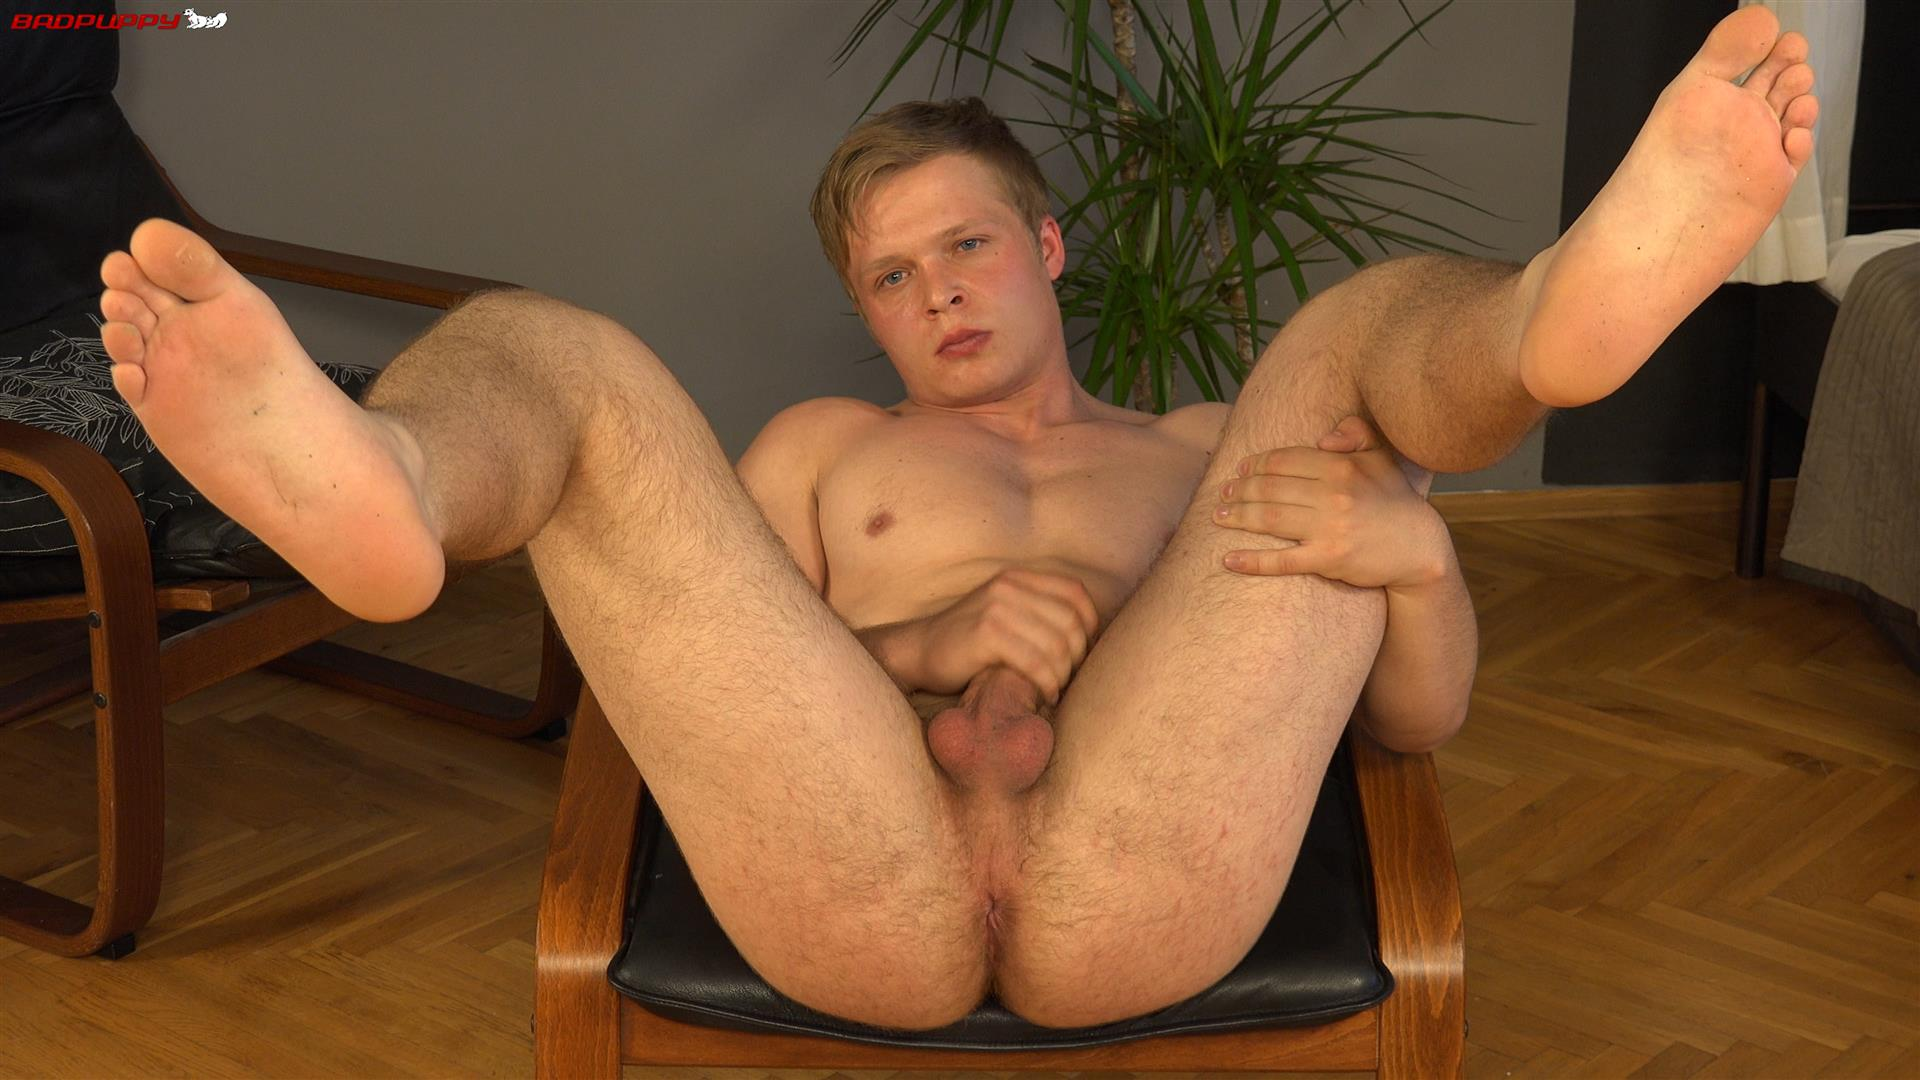 Badpuppy-Kamil-Apolon-Czech-Muscle-Twink-With-Big-Uncut-Cock-Amateur-Gay-Porn-15 Czech Muscle Twink Jerks His Big Uncut Cock For Cash